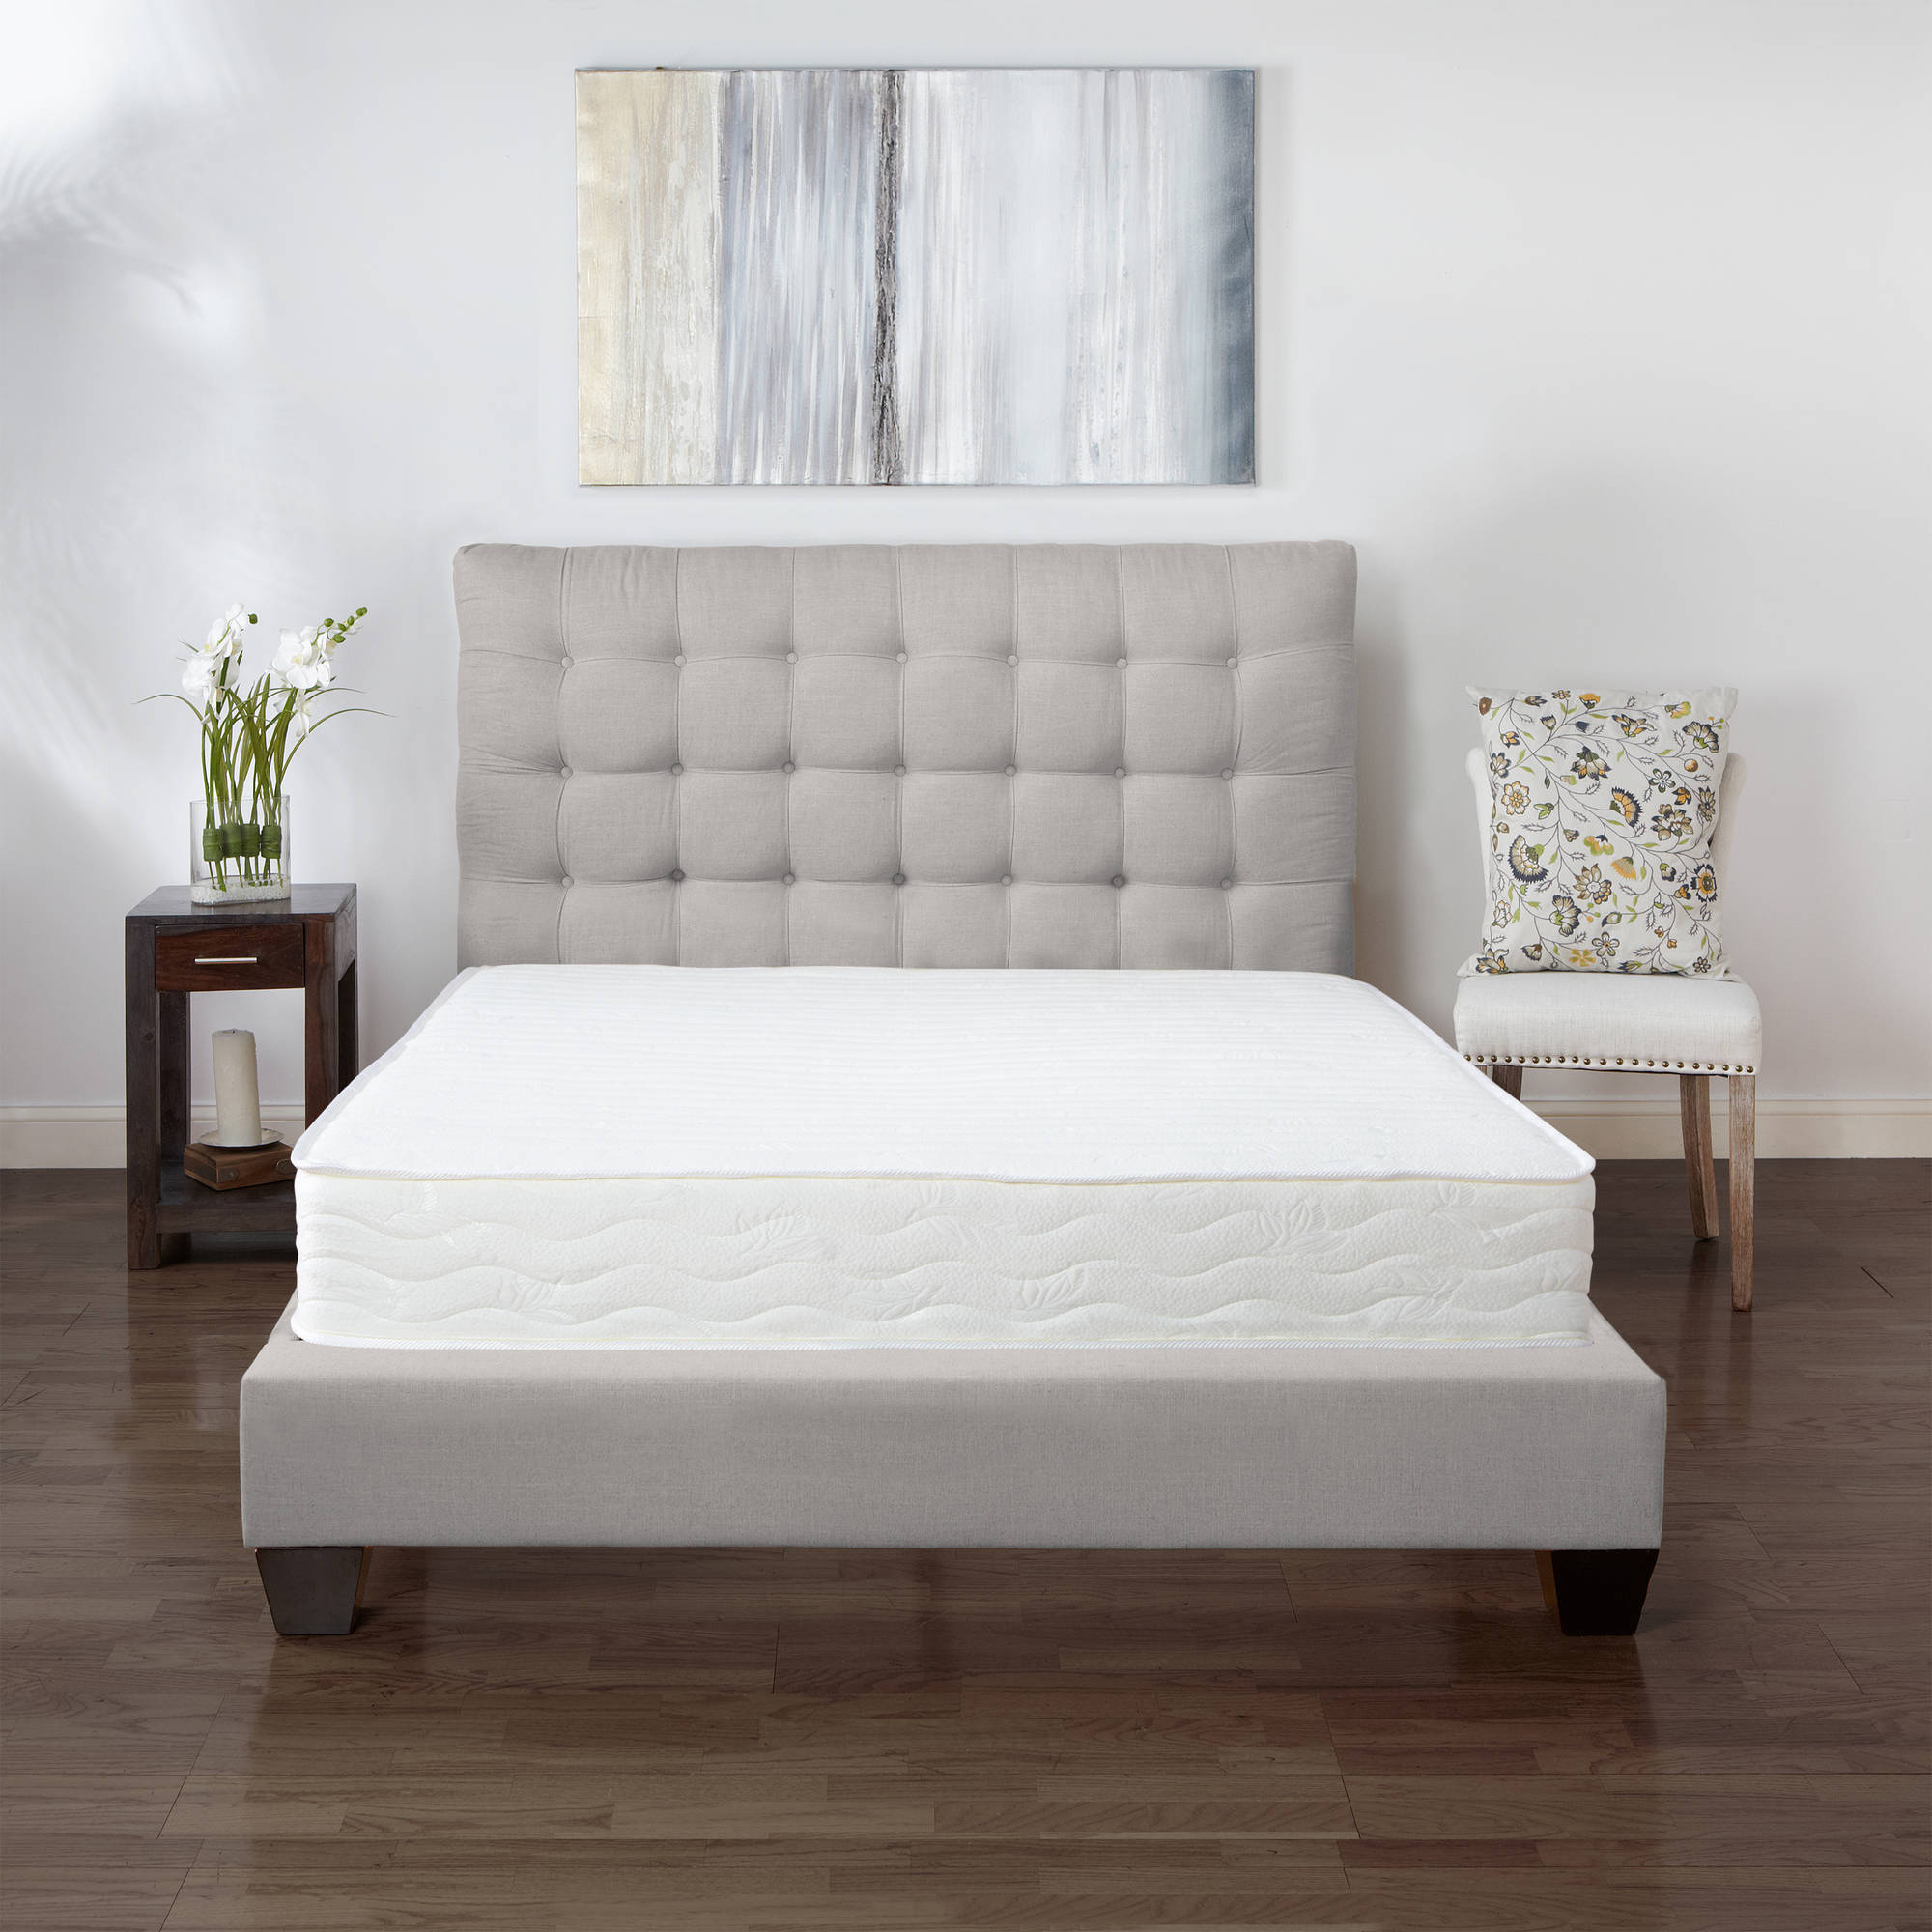 "Modern Sleep Advantage 8"" Plush Innerspring Mattress-In-a-Box, Multiple Sizes"